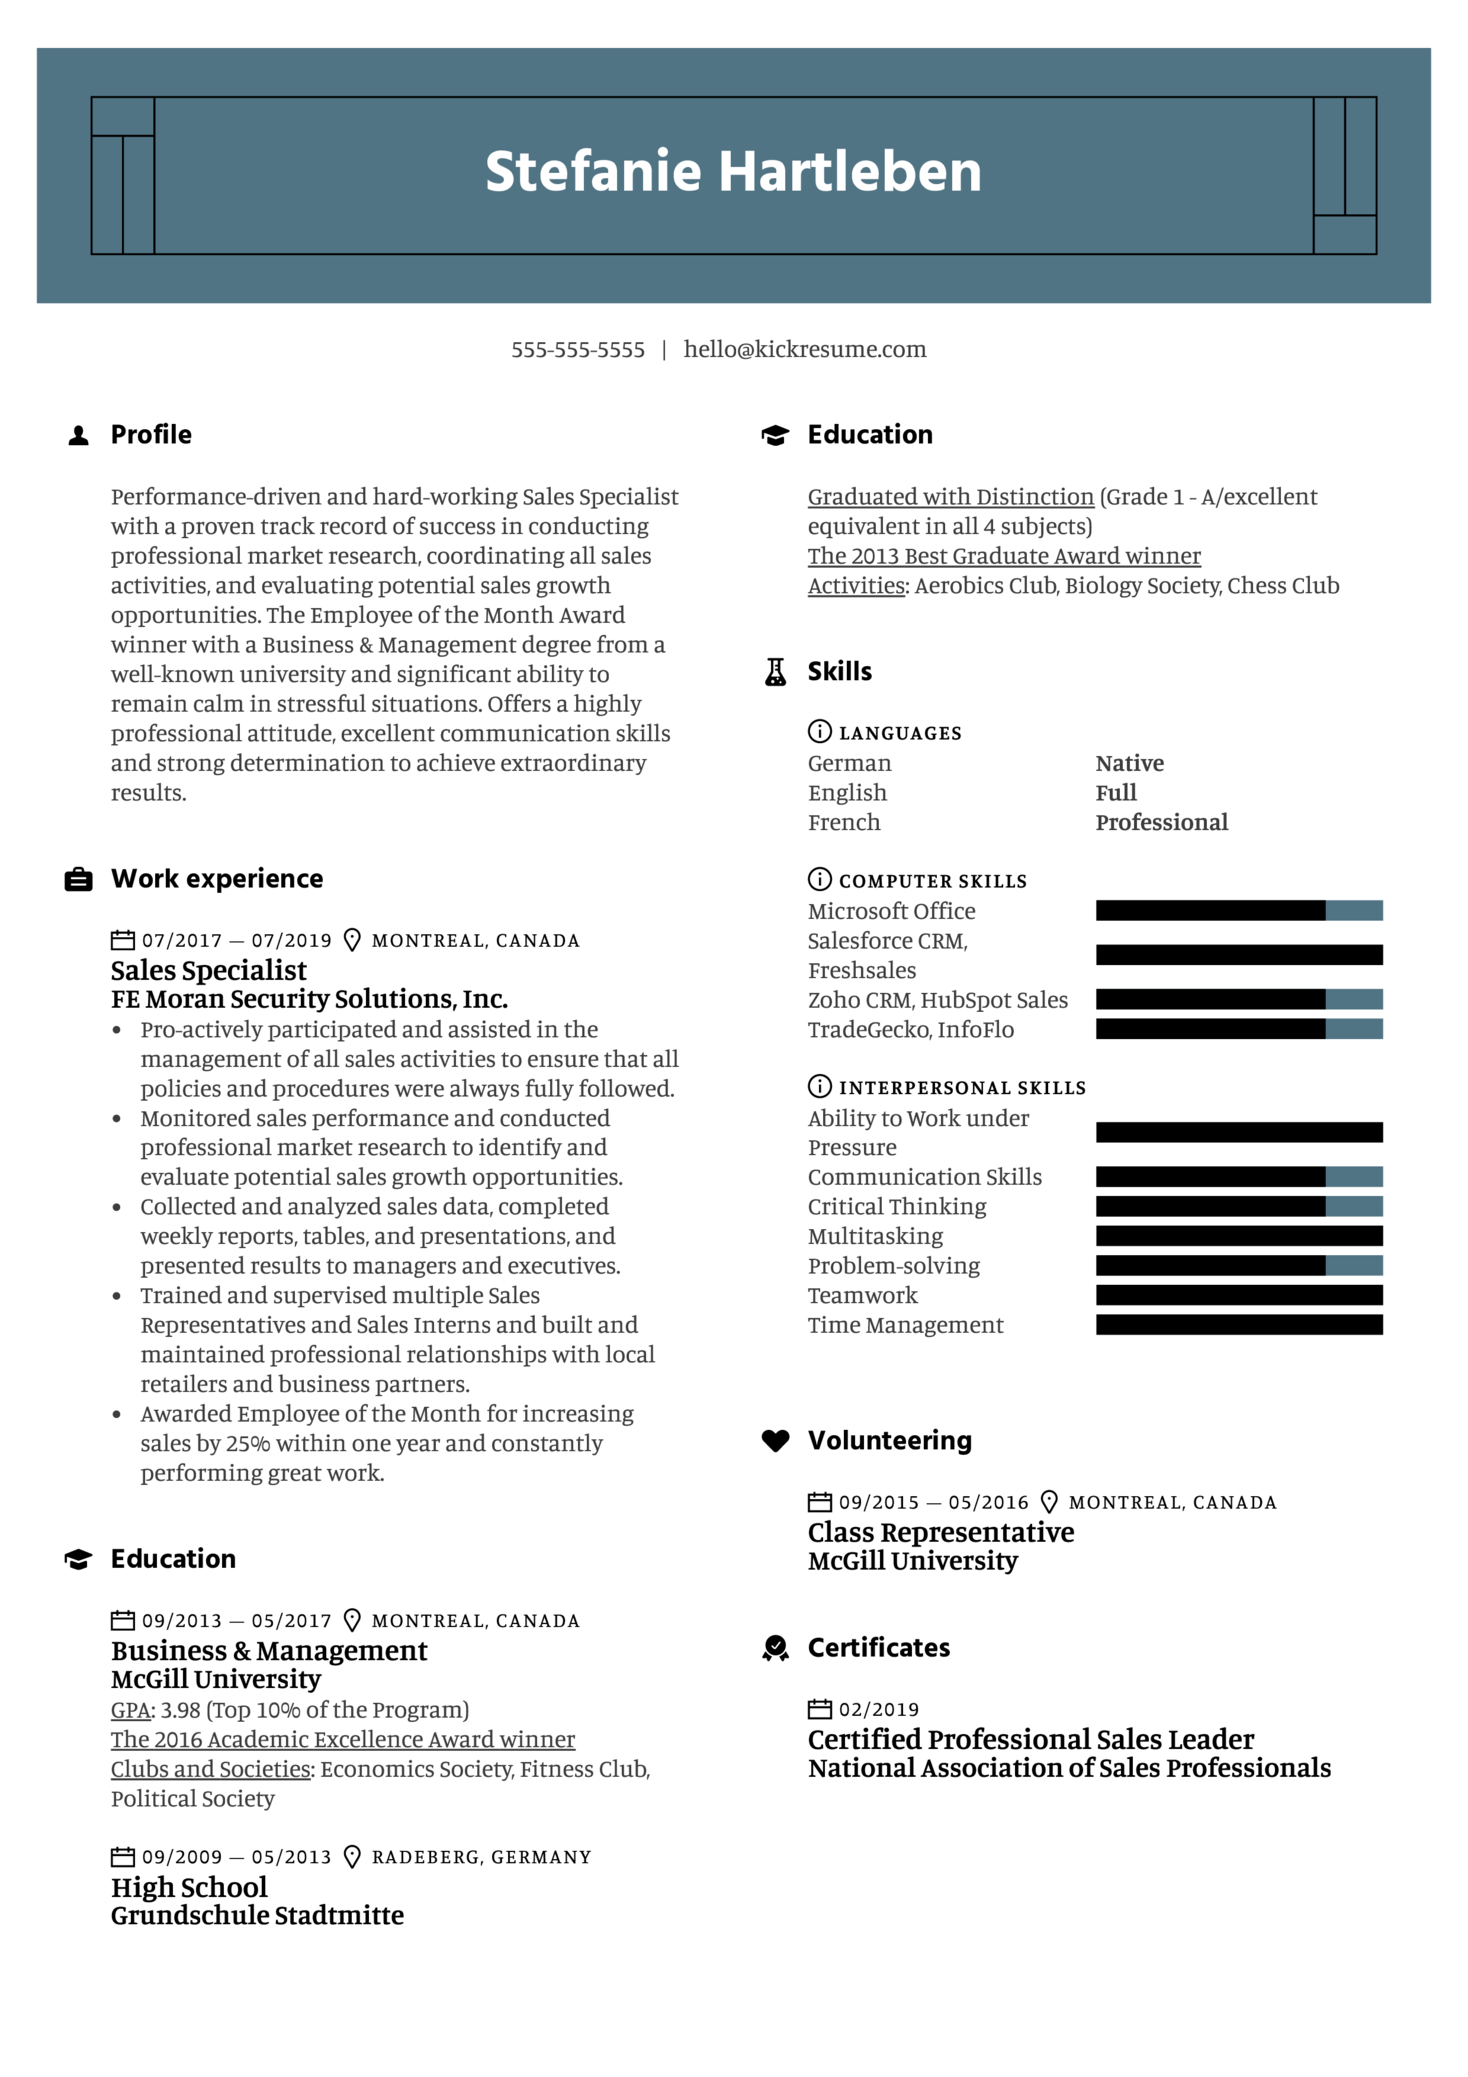 Sales Specialist Resume Example (Part 1)